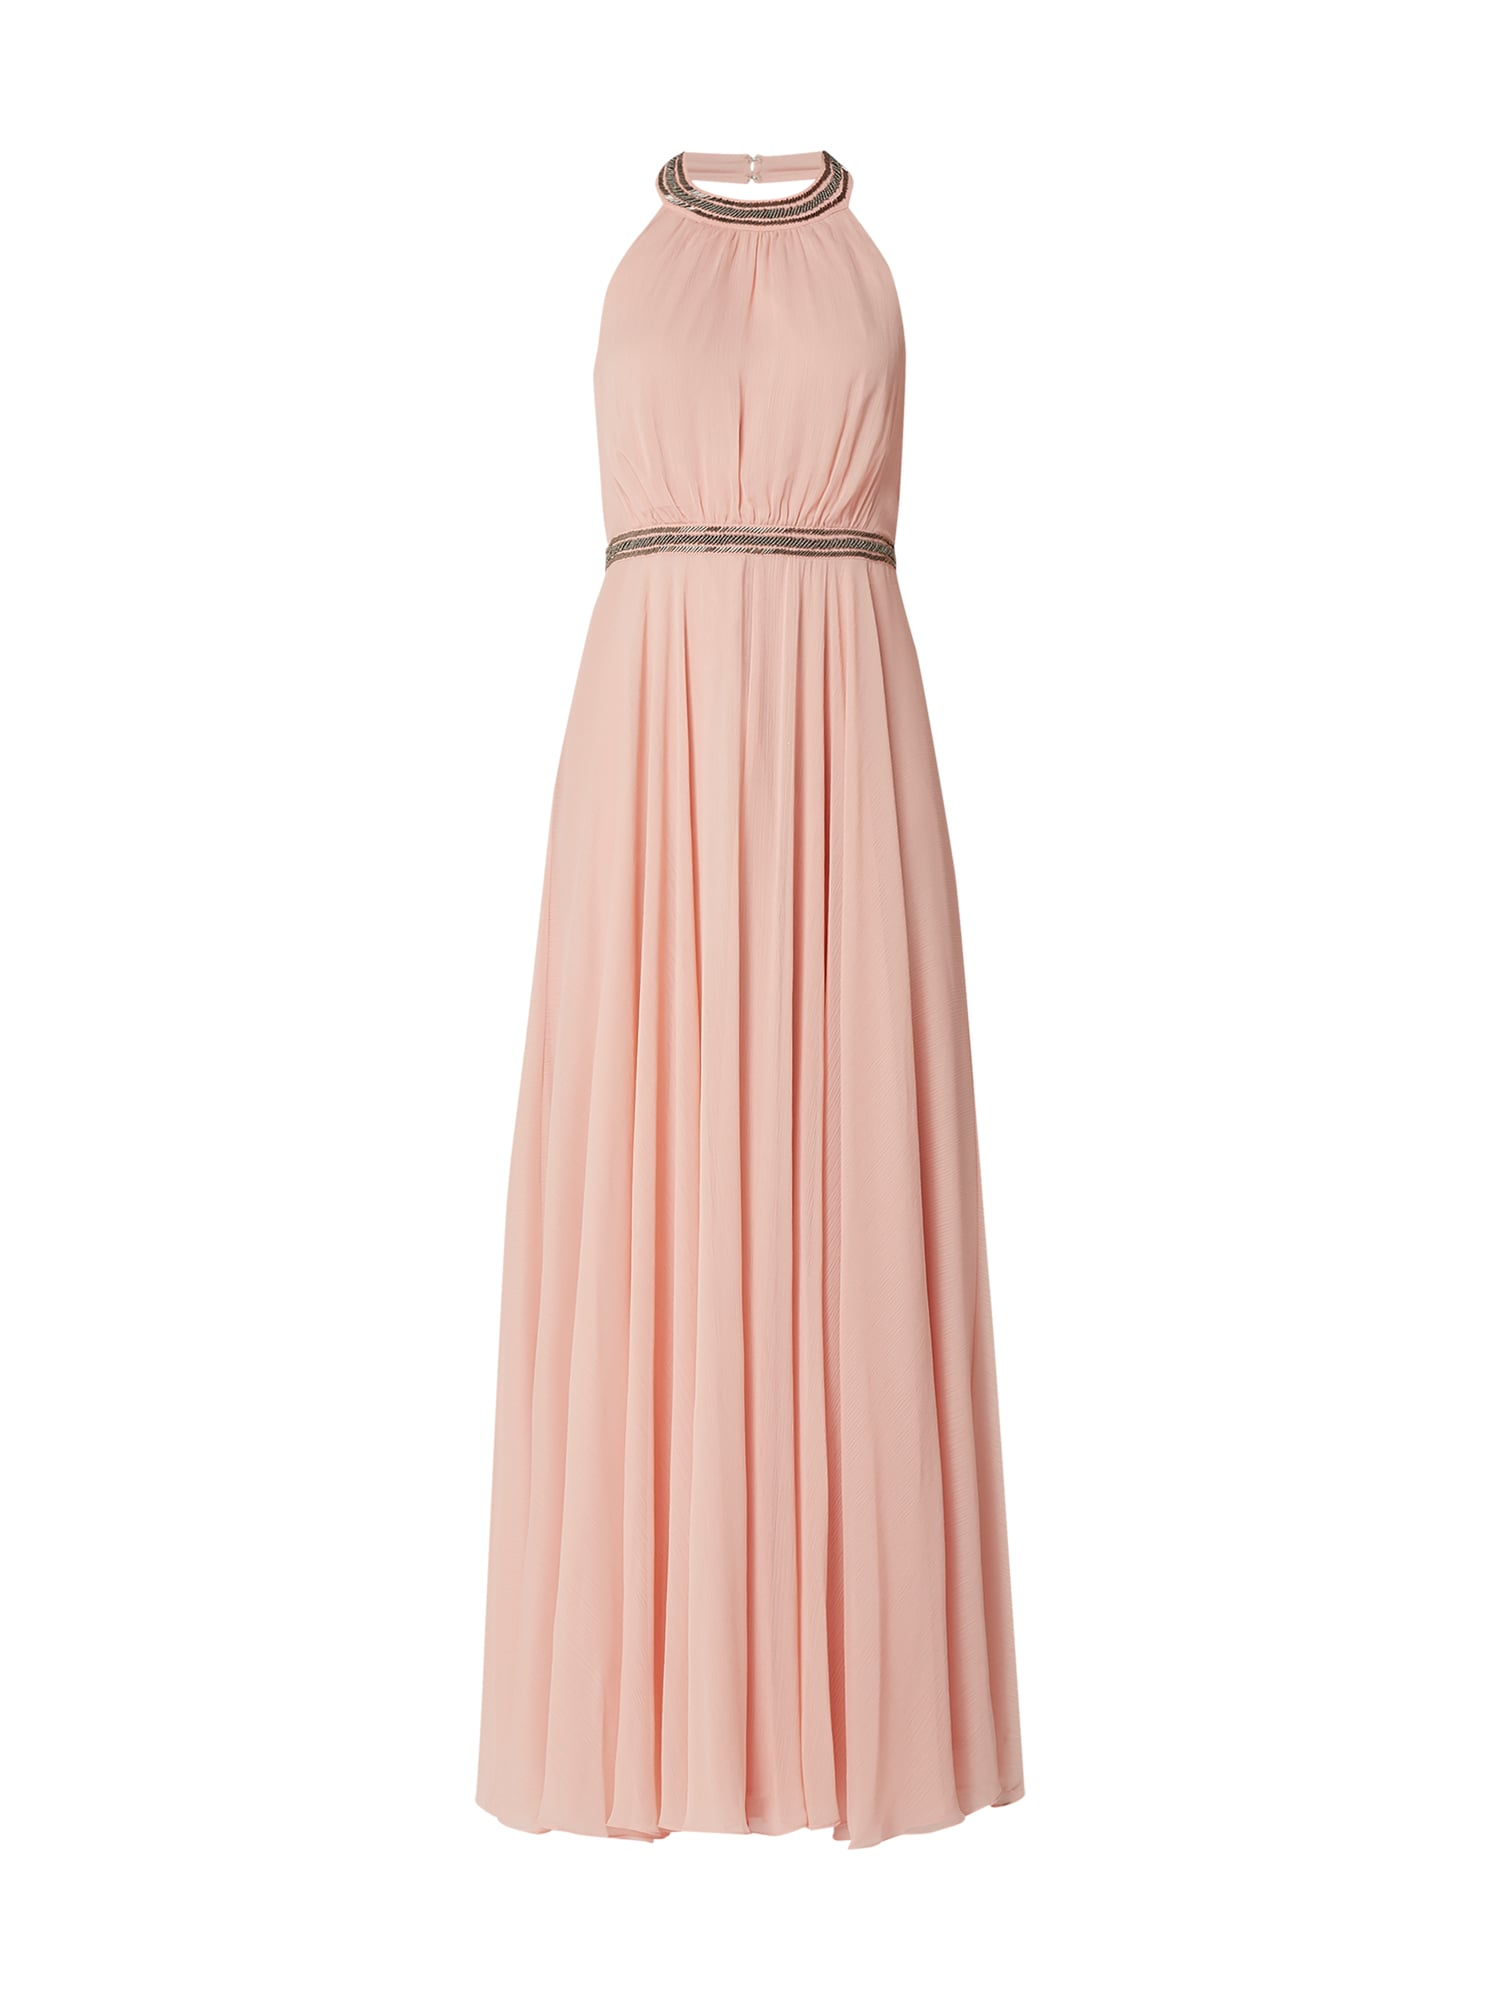 ESPRIT COLLECTION Abendkleid mit Zierperlenbesatz in Orange online kaufen  (15) ▷ P&C Online Shop